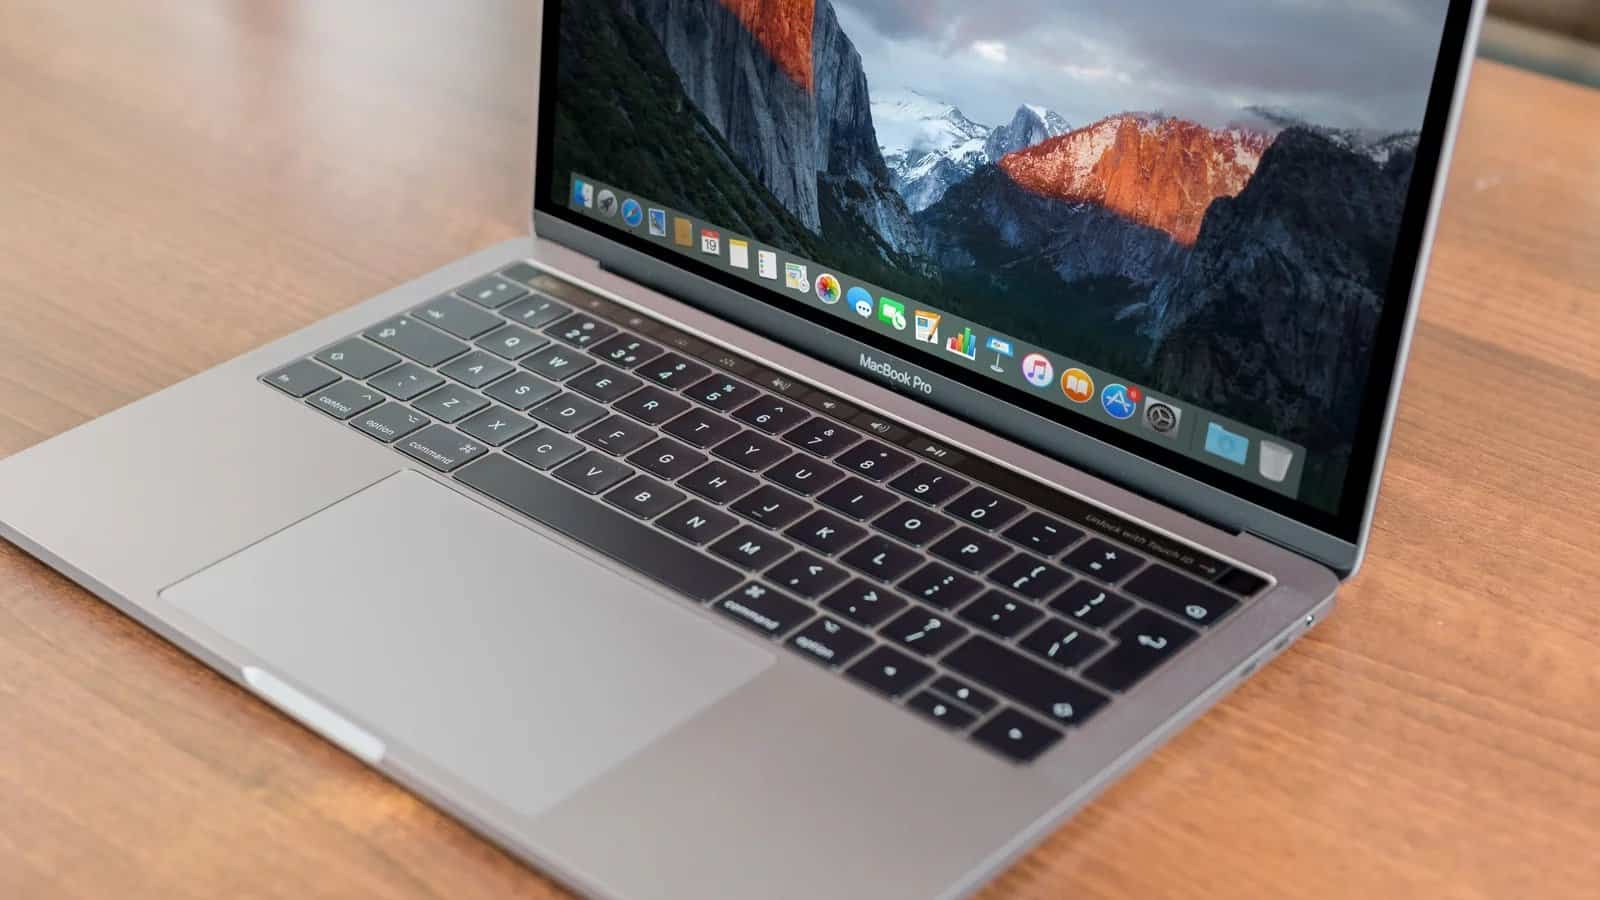 Are Macs Good For Gaming in 2019? [Simple Guide] - GamingScan